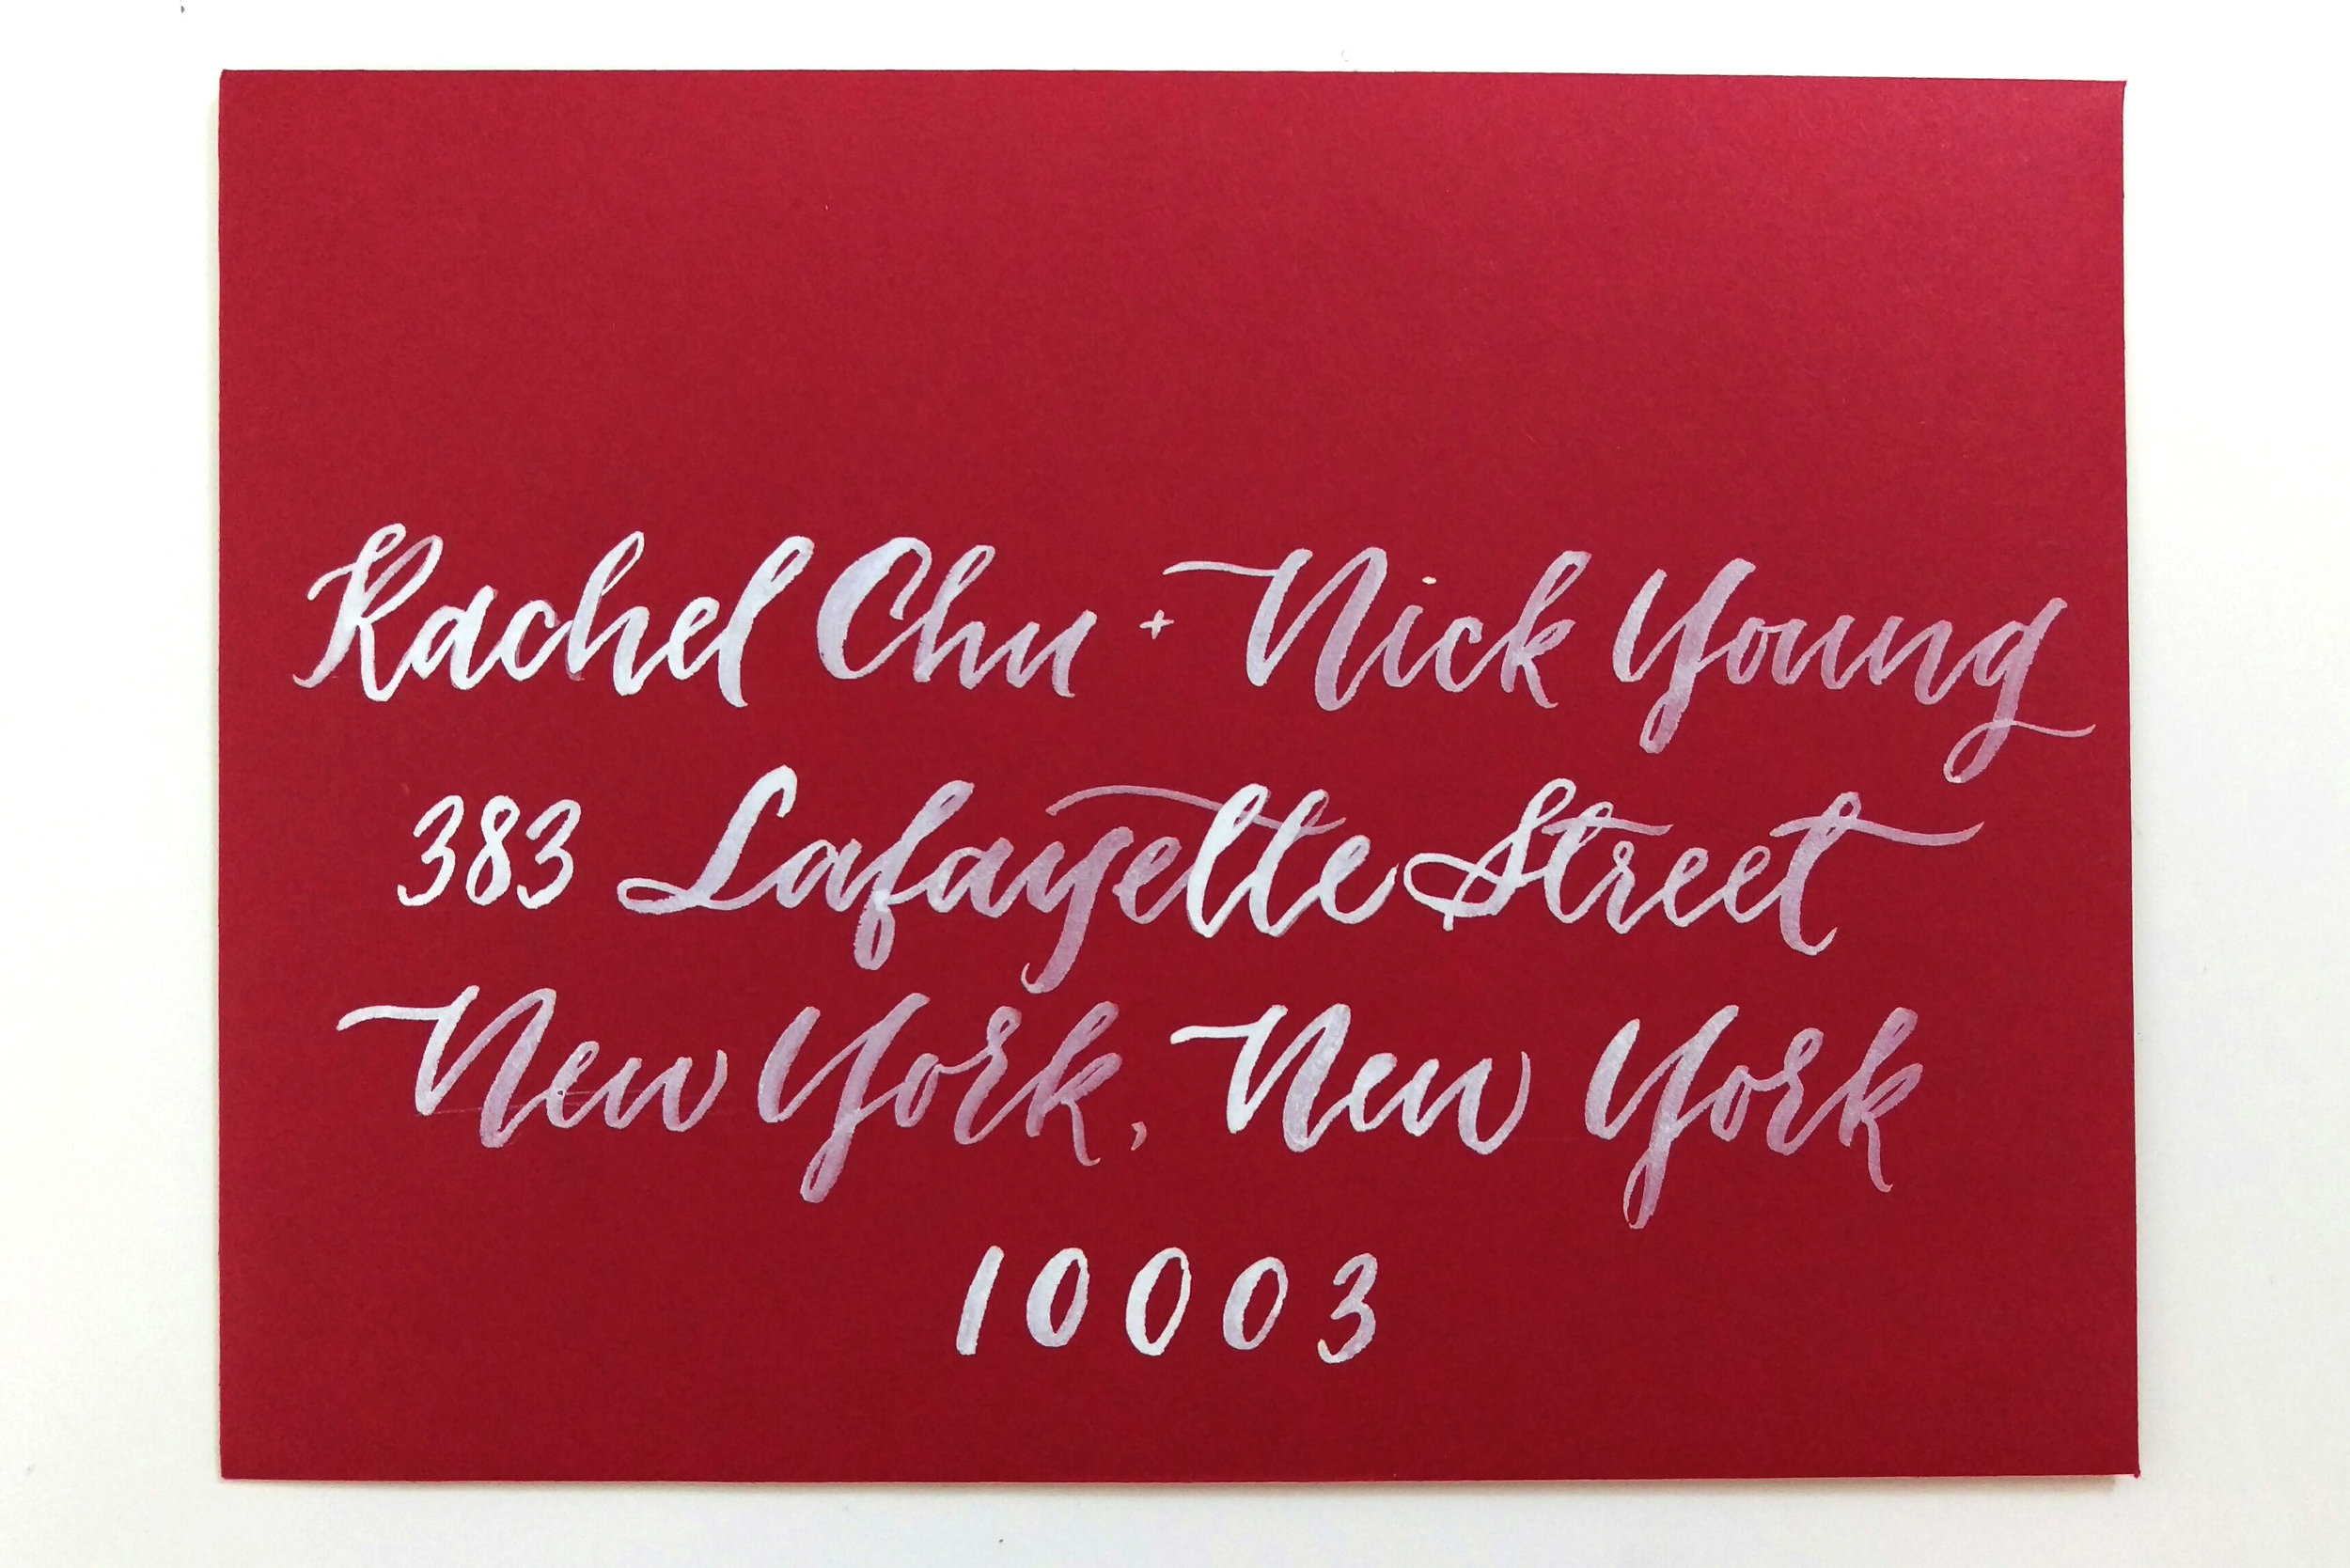 Claremont red envelope copy.jpg